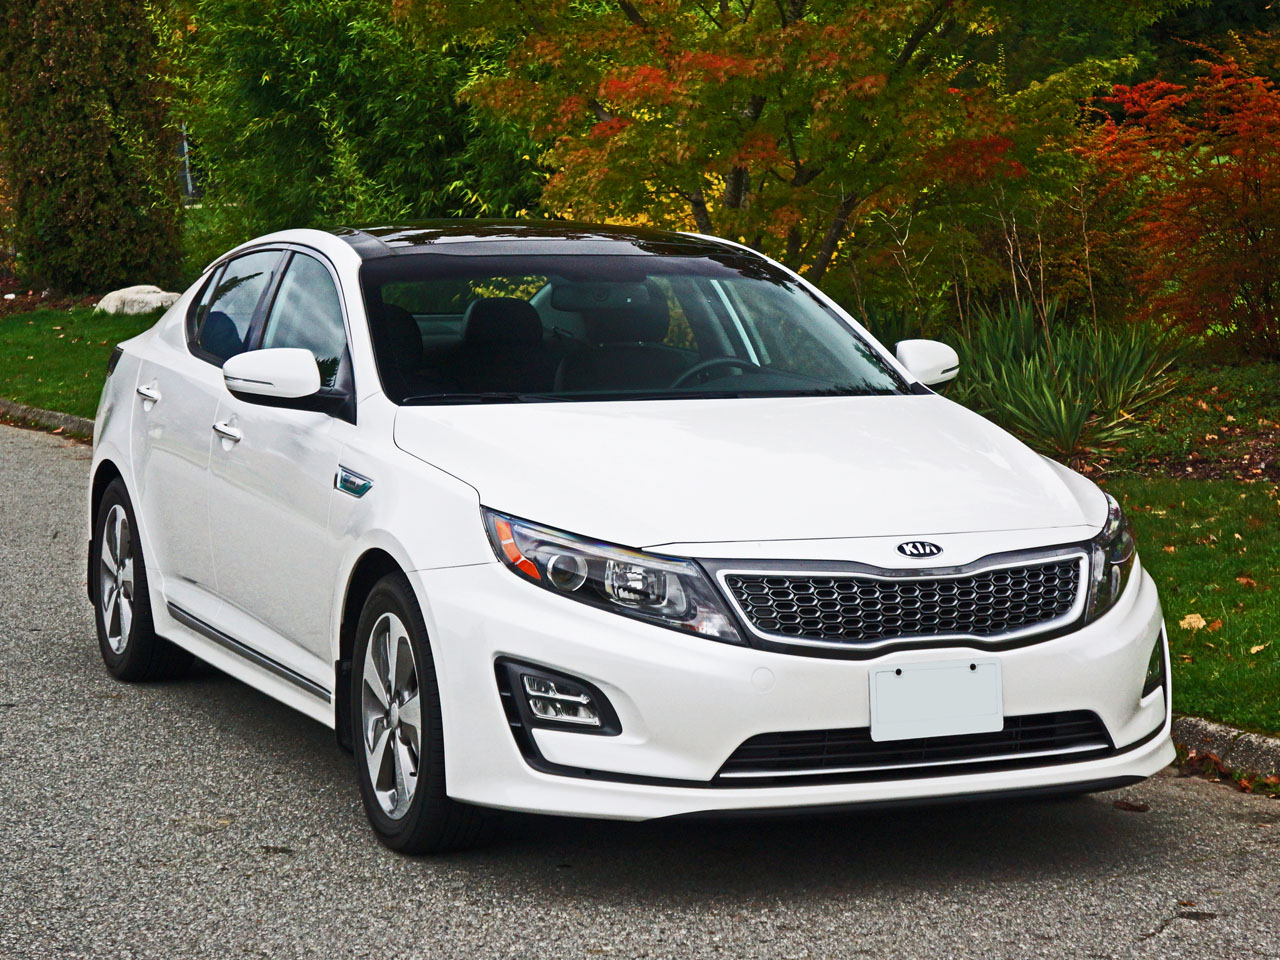 optima hybrid kia expert drive test review chase chris